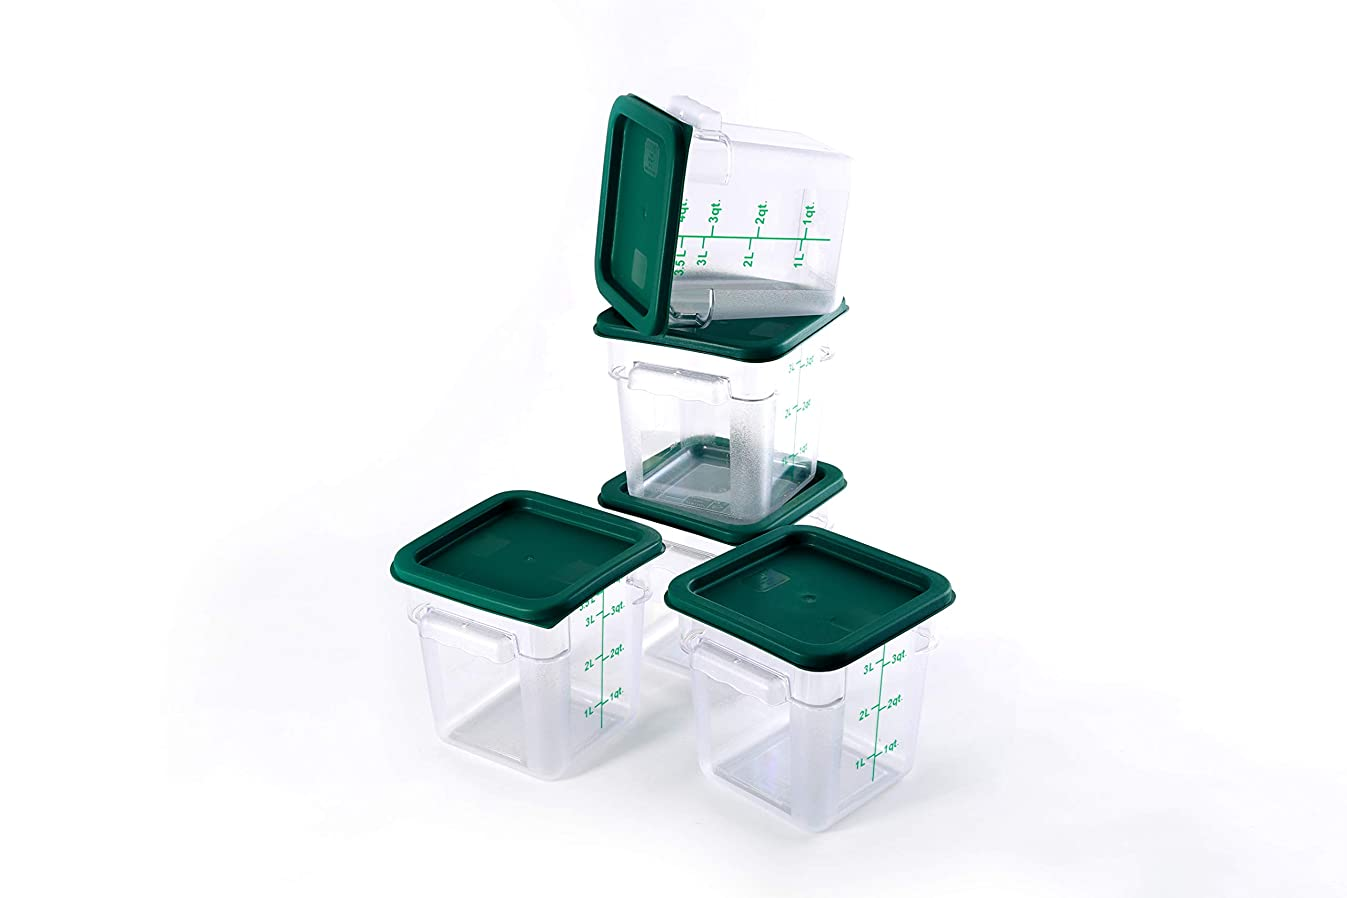 Hakka 4 Qt Commercial Grade Square Food Storage Containers with Lids,Polycarbonate,Clear - Case of 5